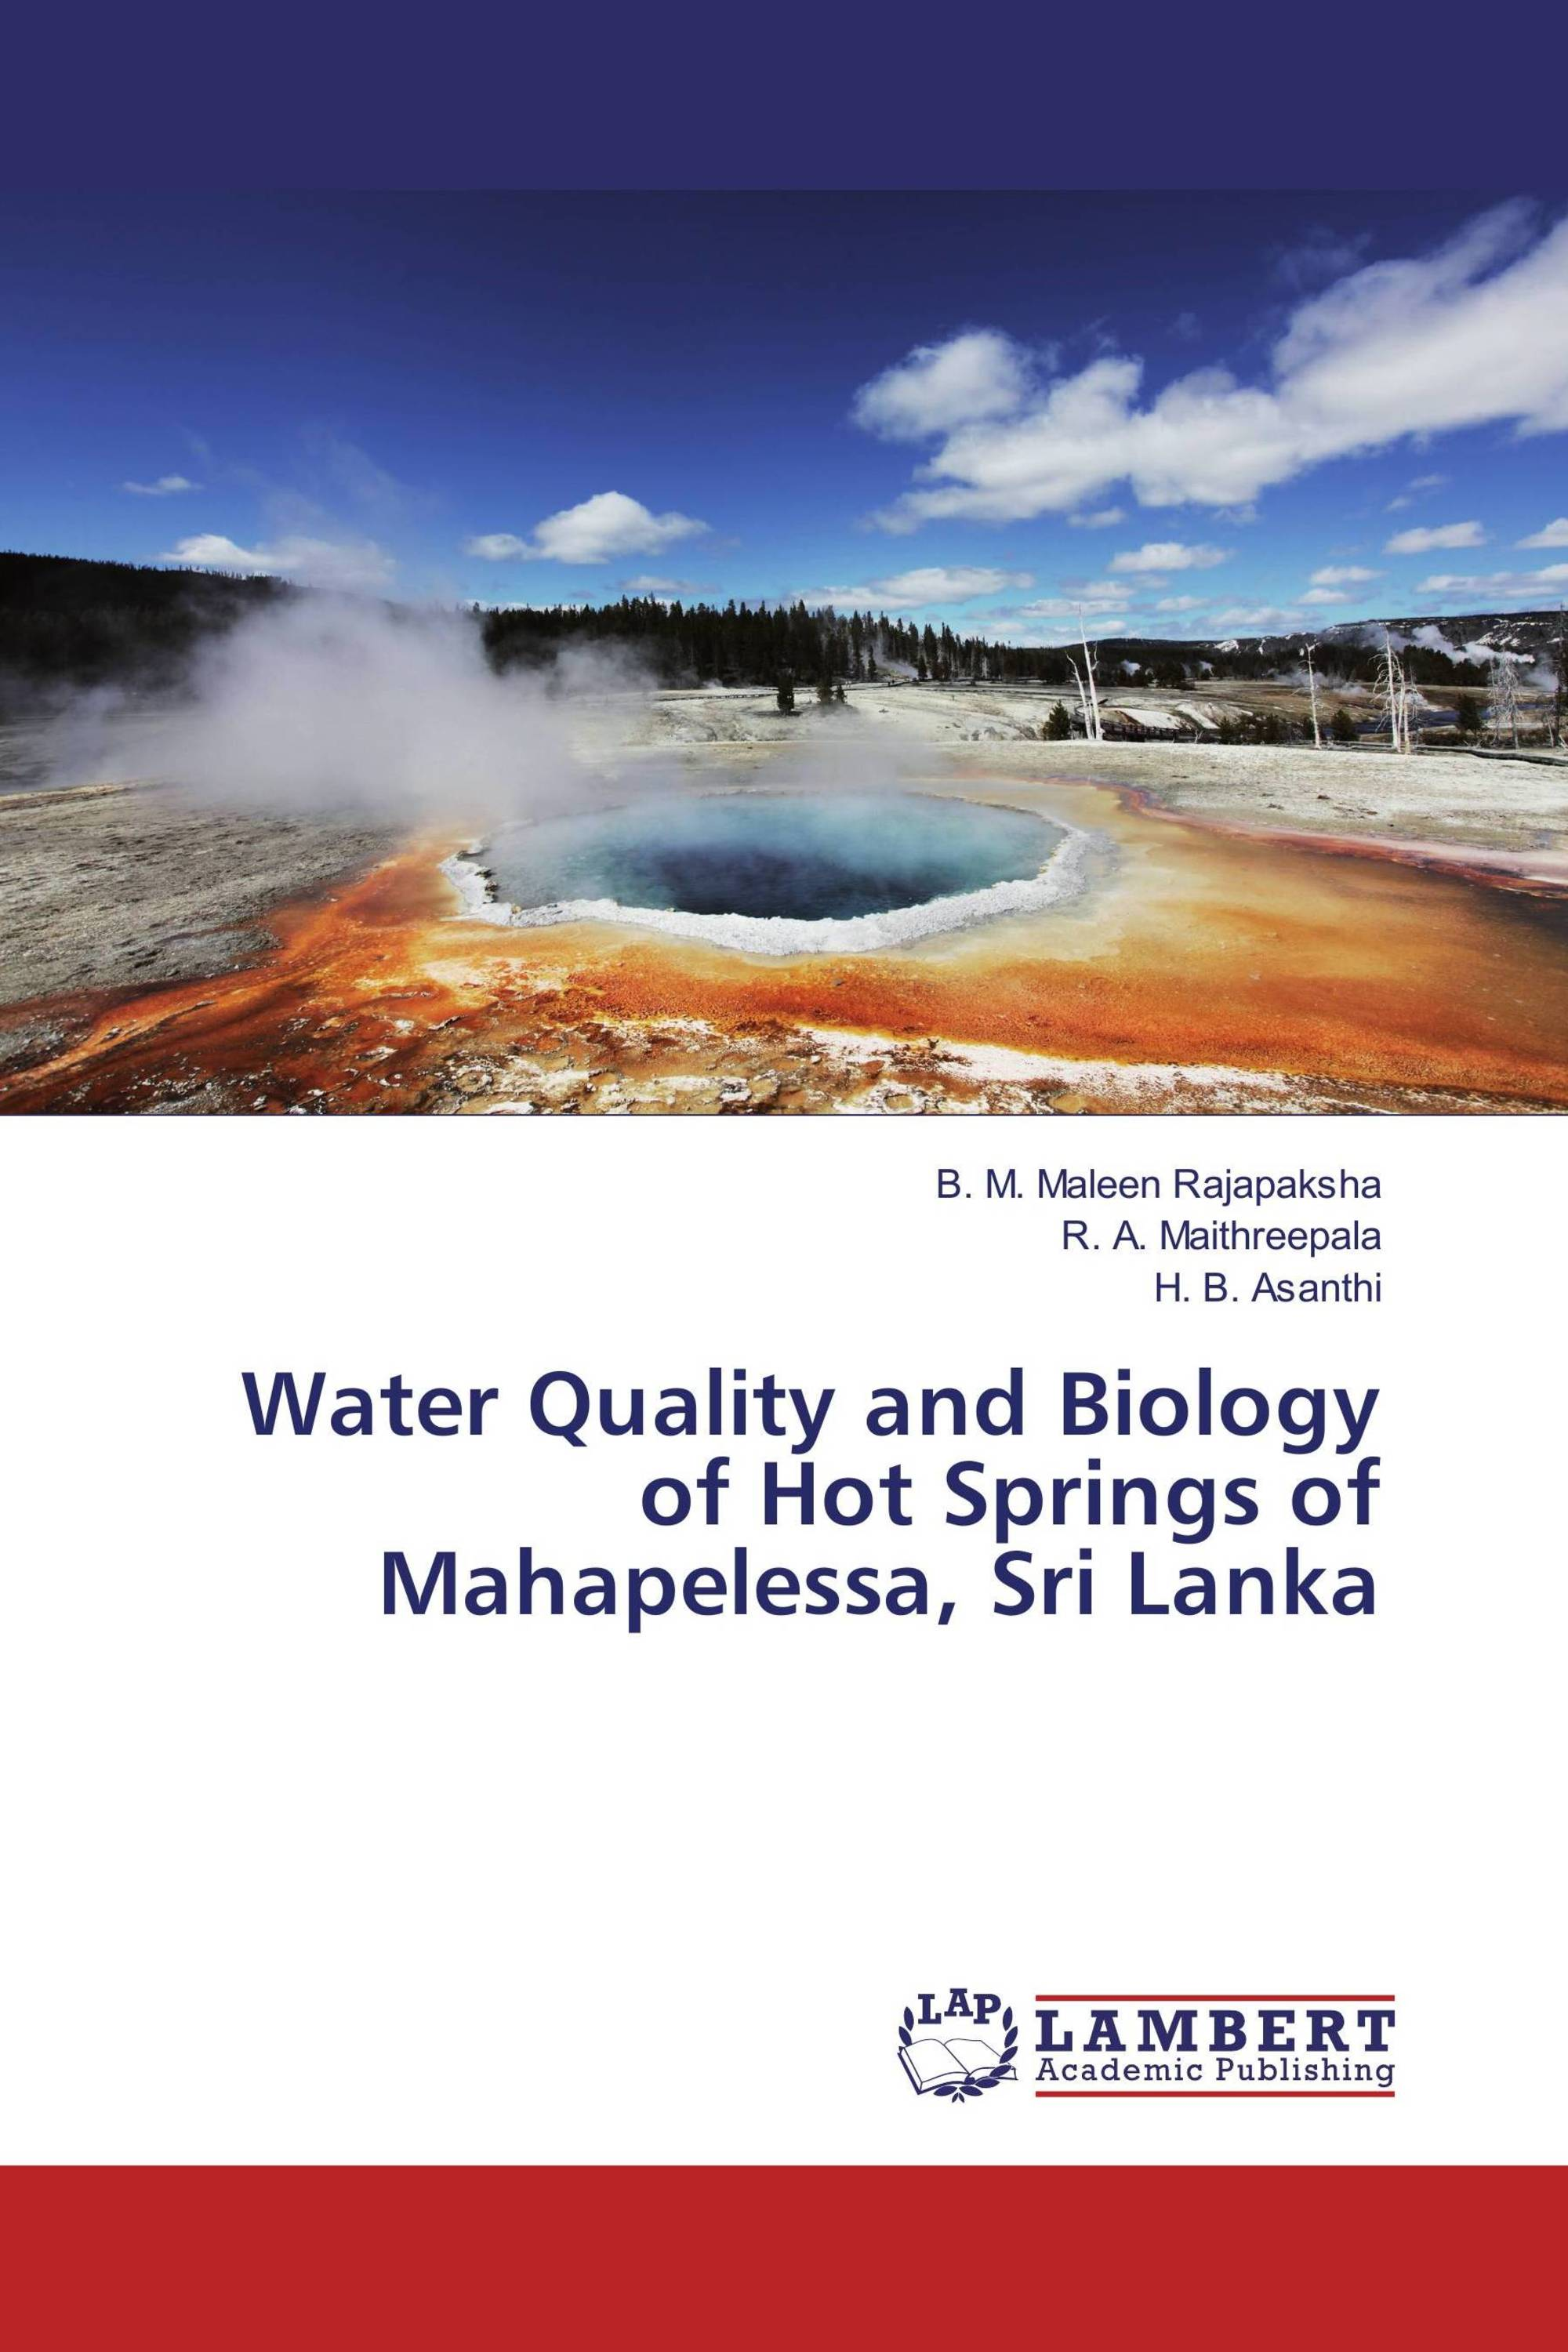 research paper on water Water researchwelcome to the online submission and editorial system for water research water research publishes refereed, original research papers.